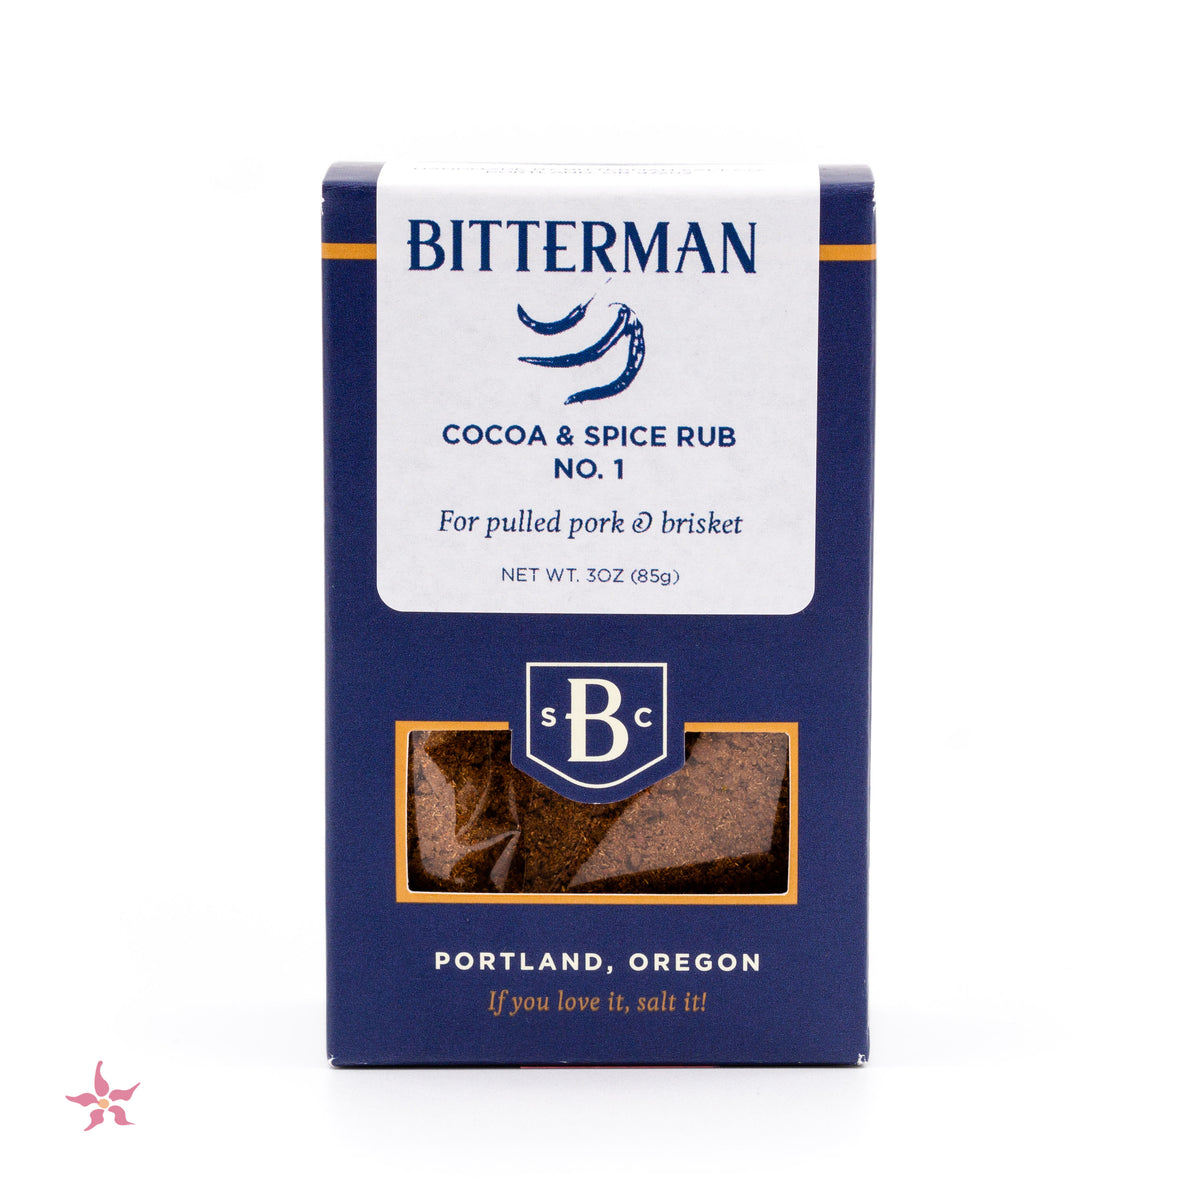 Bitterman's Cocoa & Spice Rub Salt No. 1